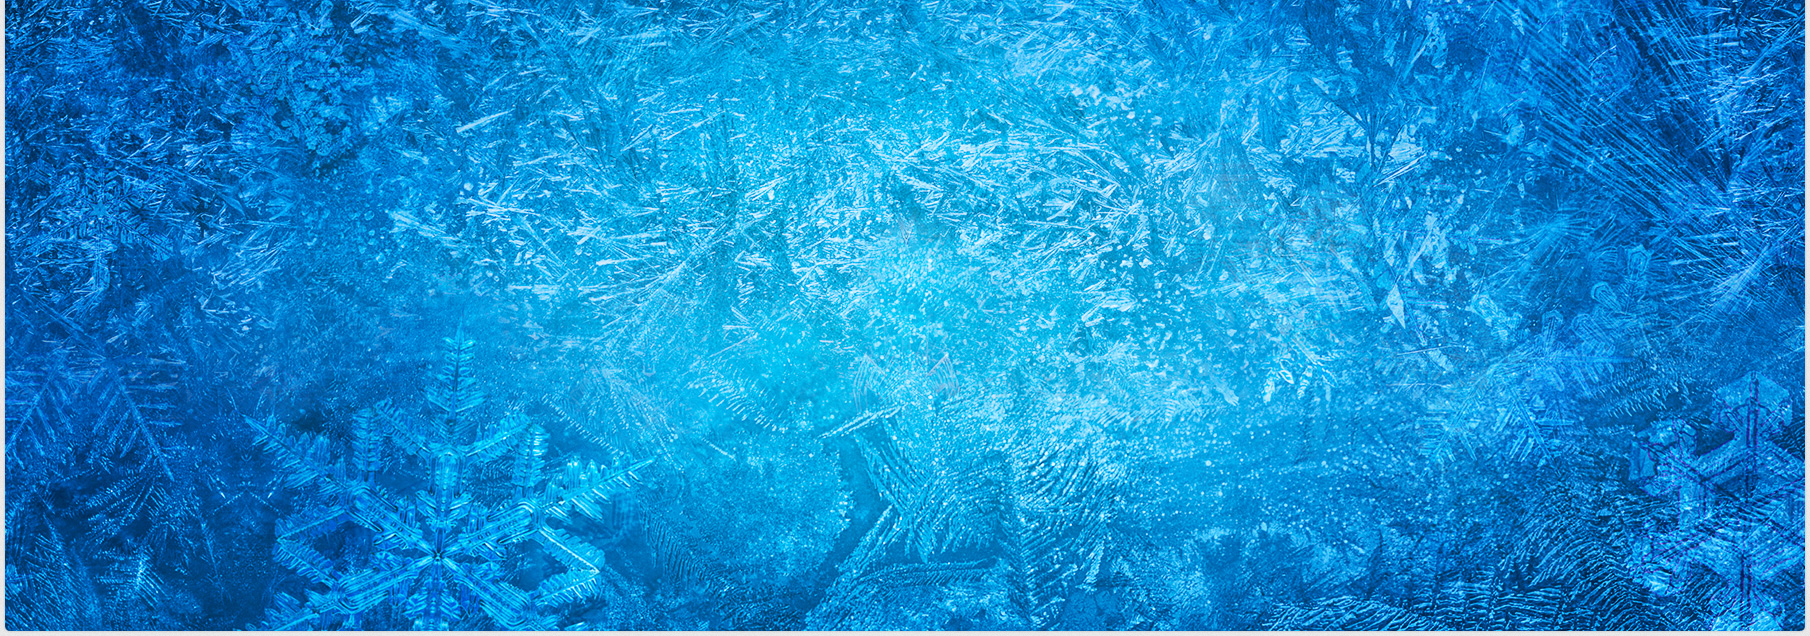 Free Frozen Background Cliparts, Download Free Clip Art.